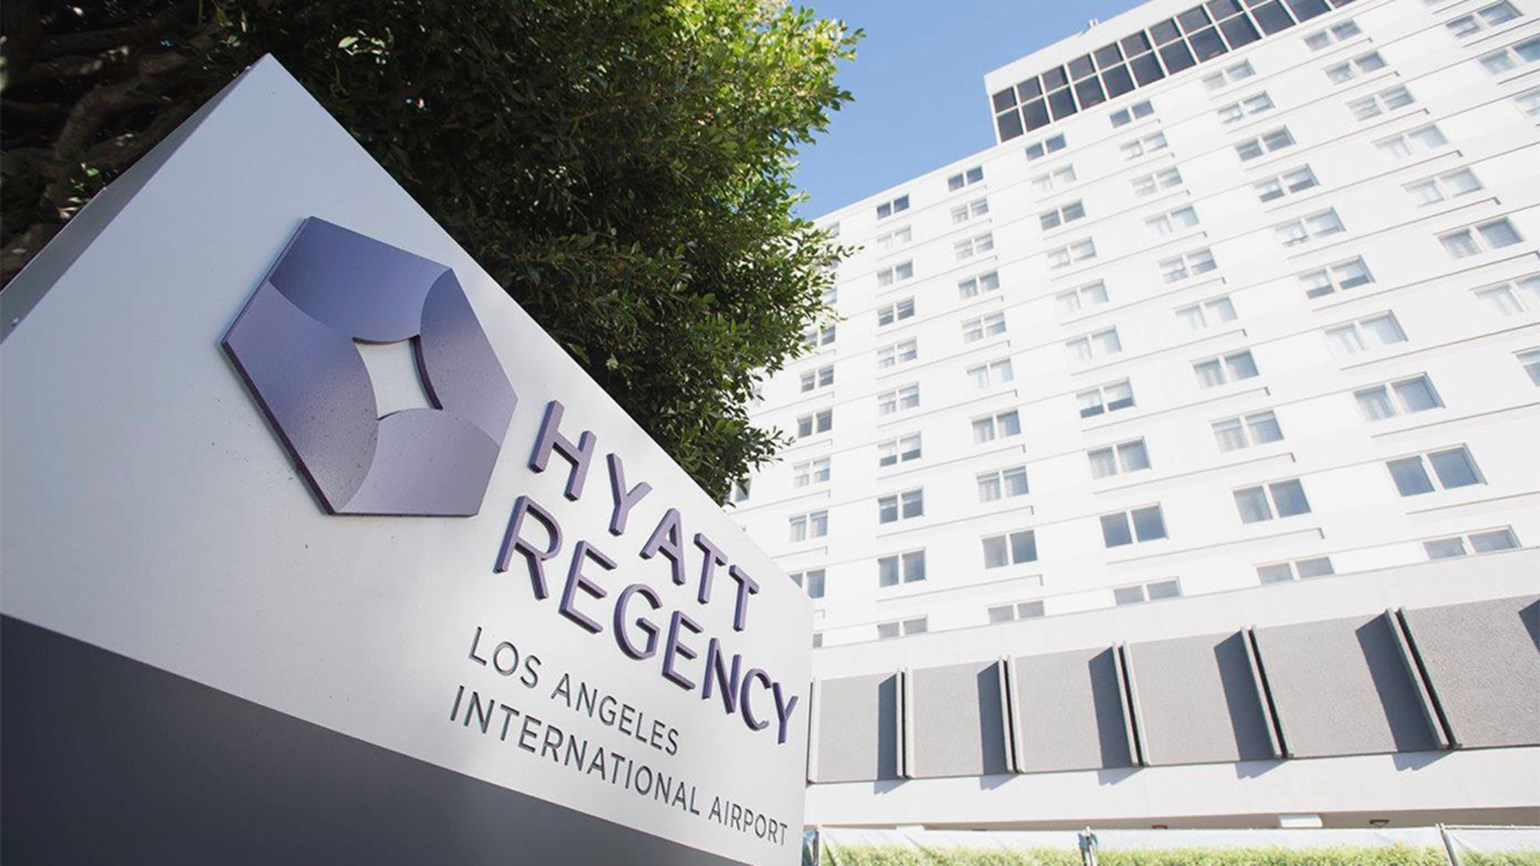 Hyatt courts small businesses with new program